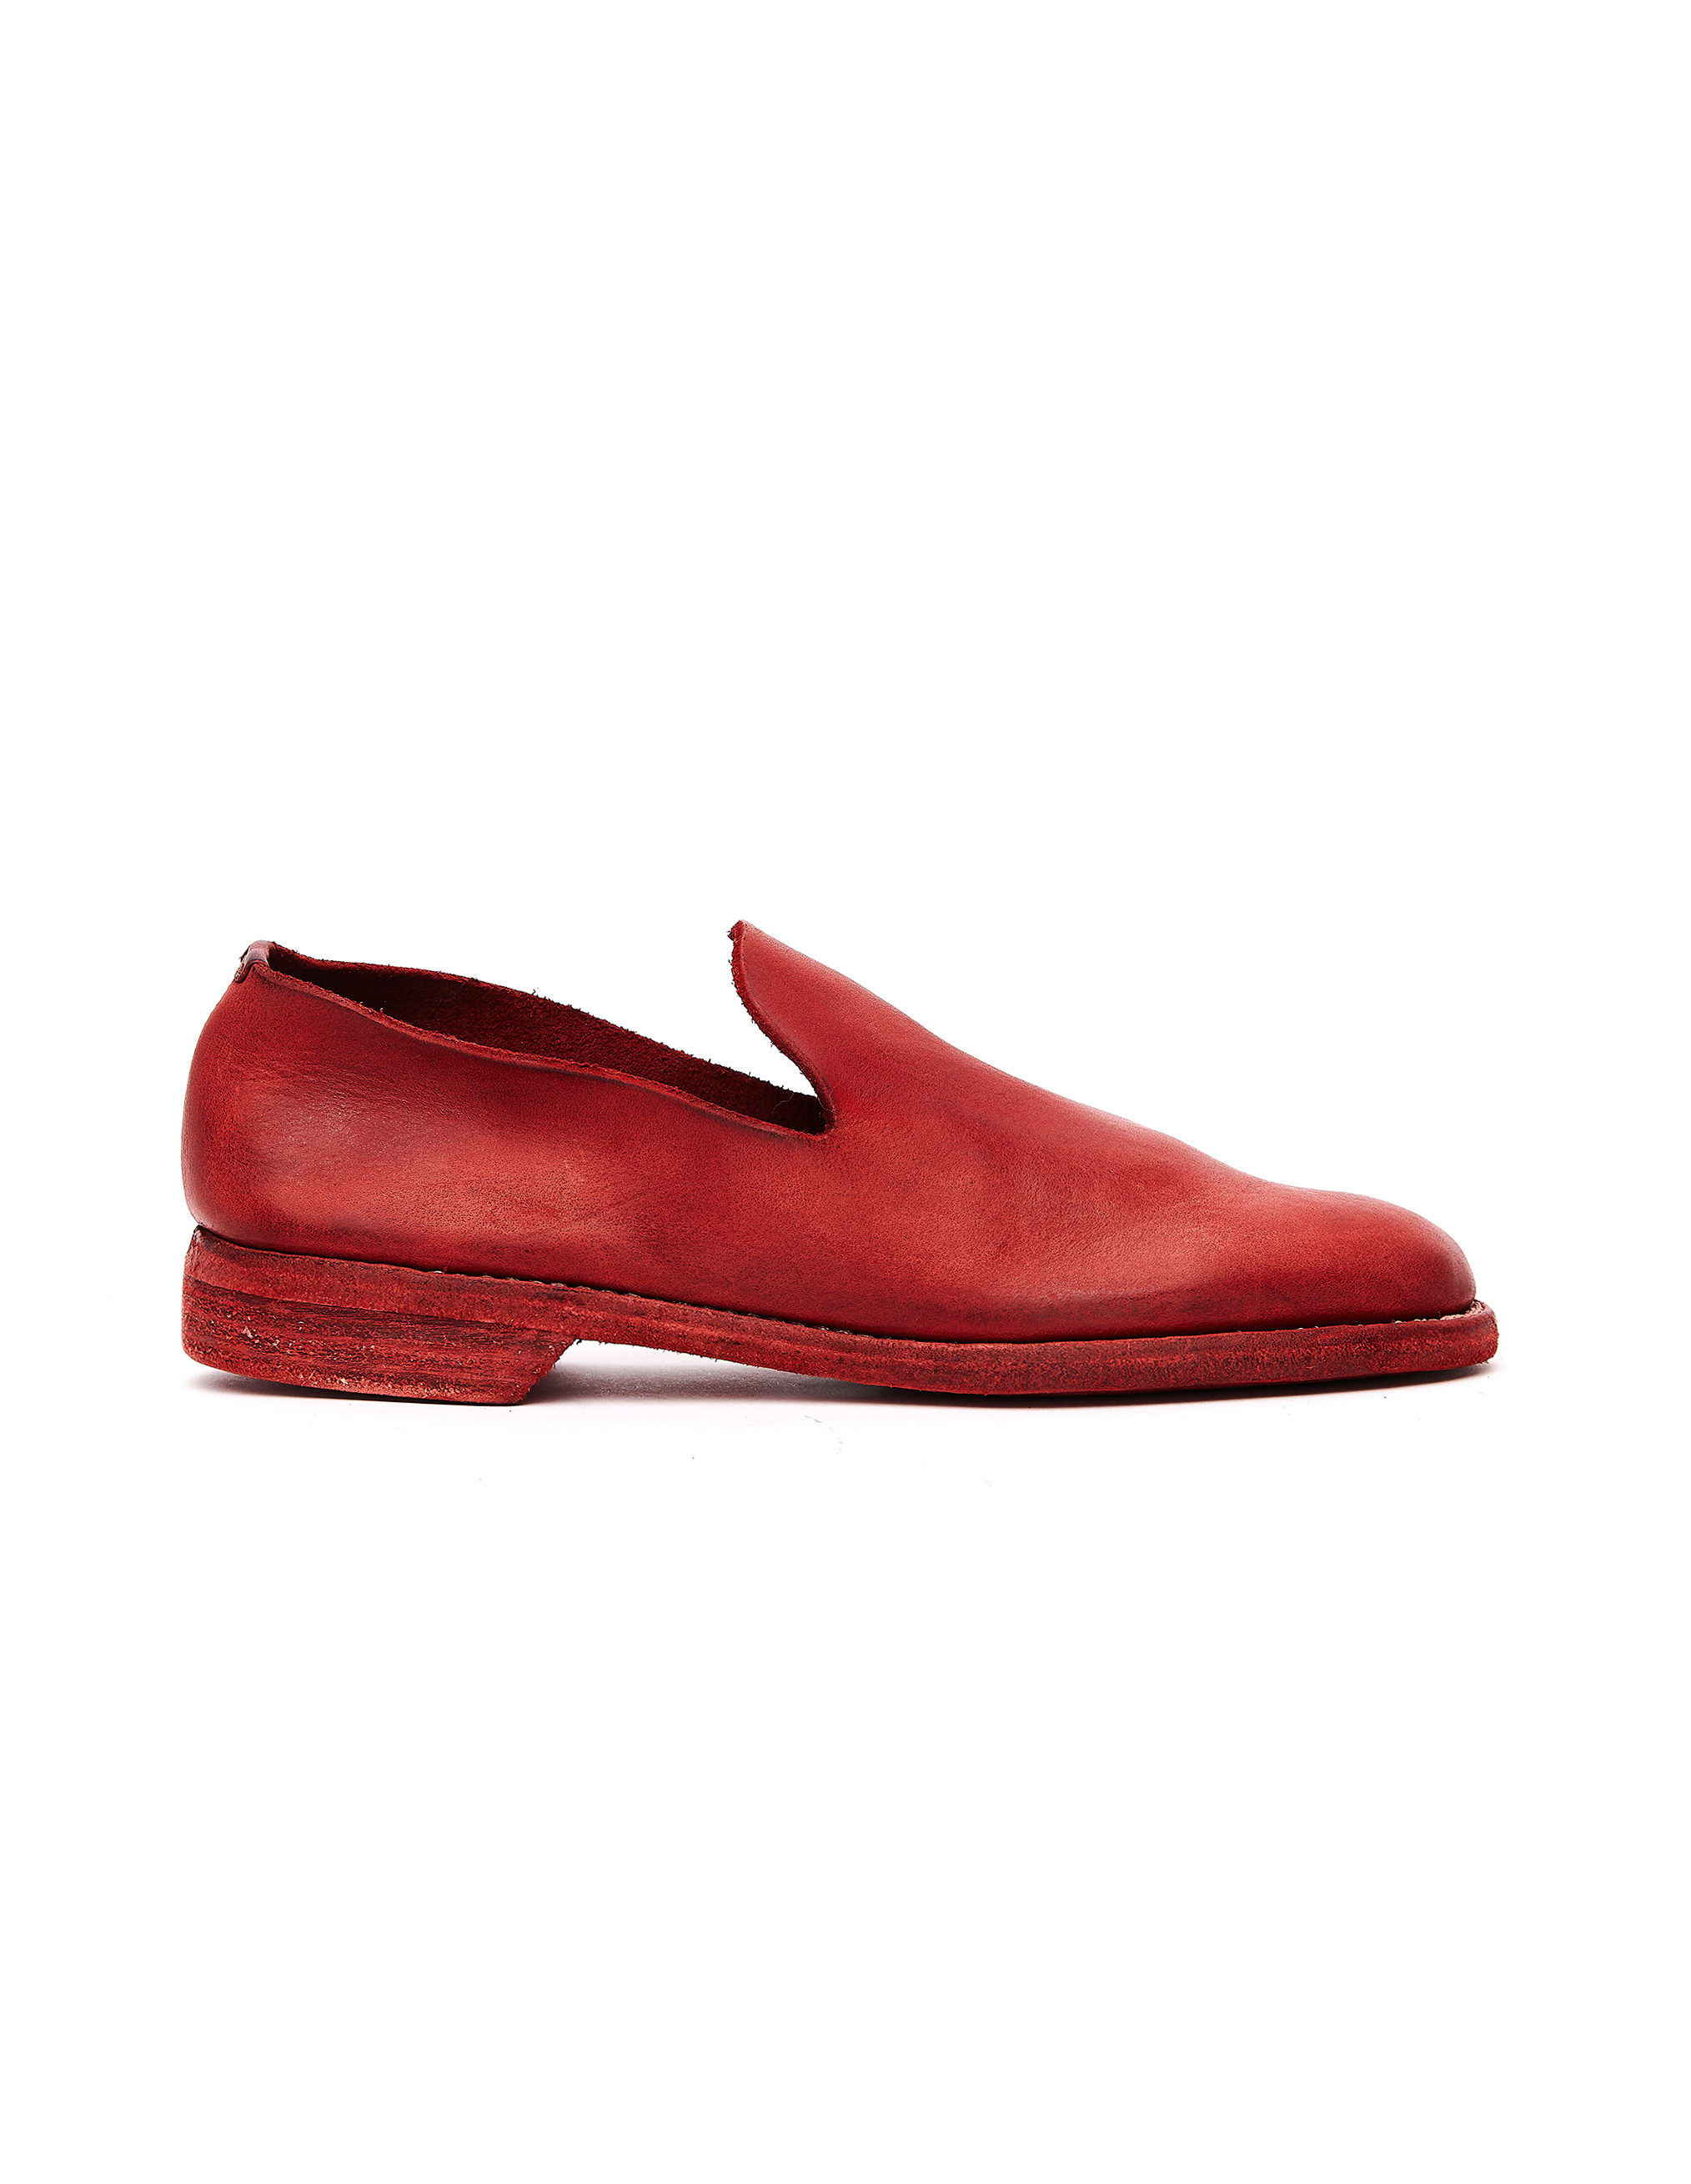 Guidi Red Leather Loafers